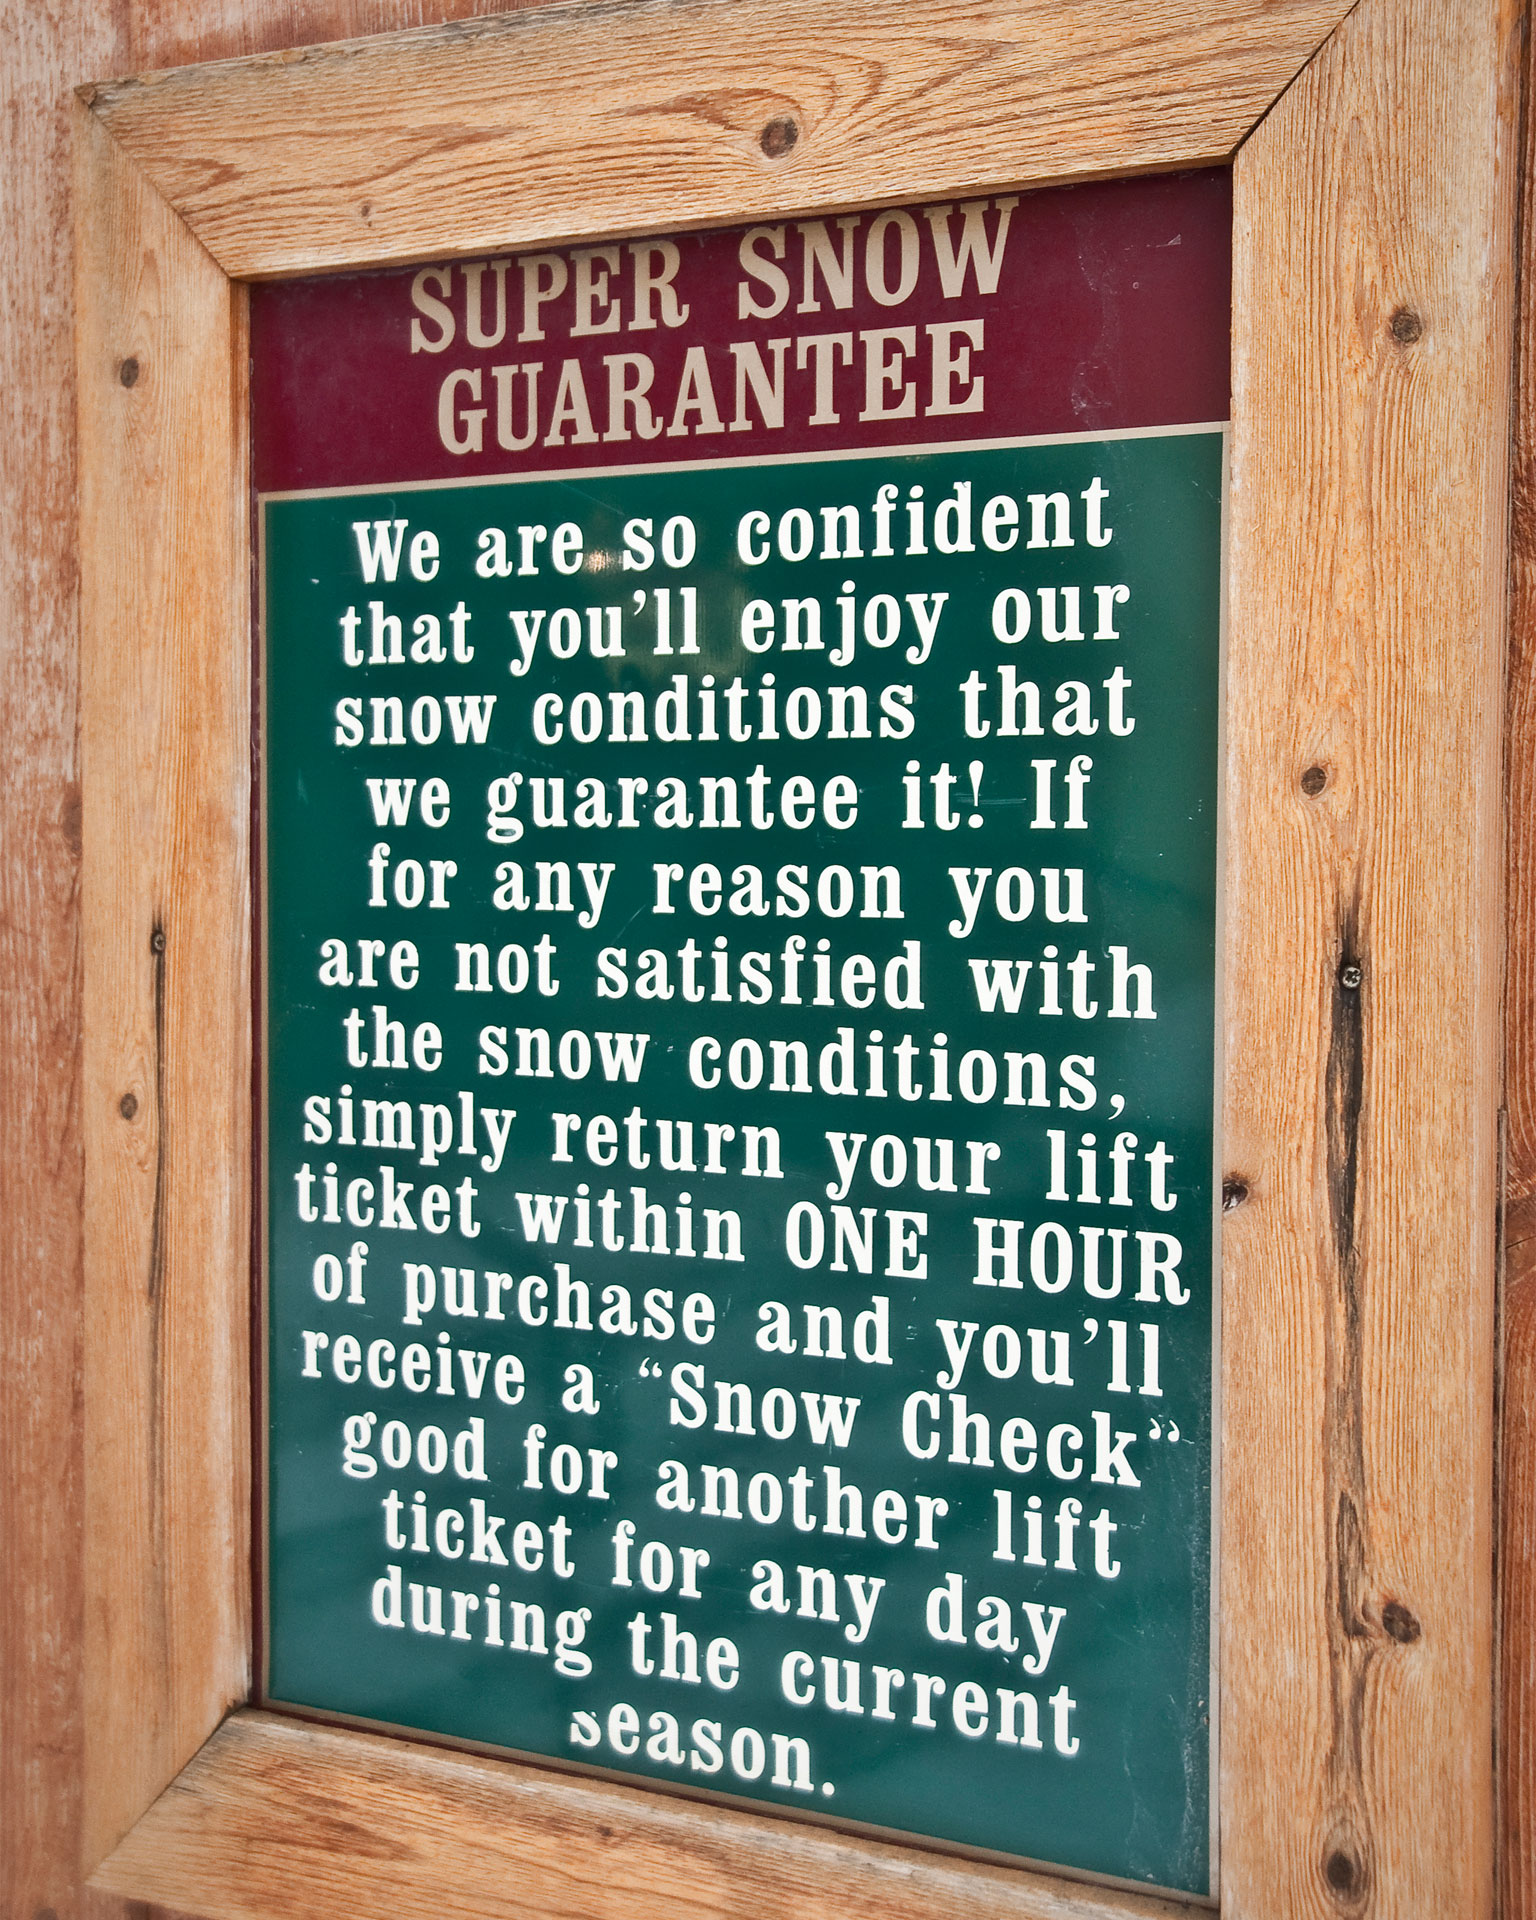 Snow Guarantee.